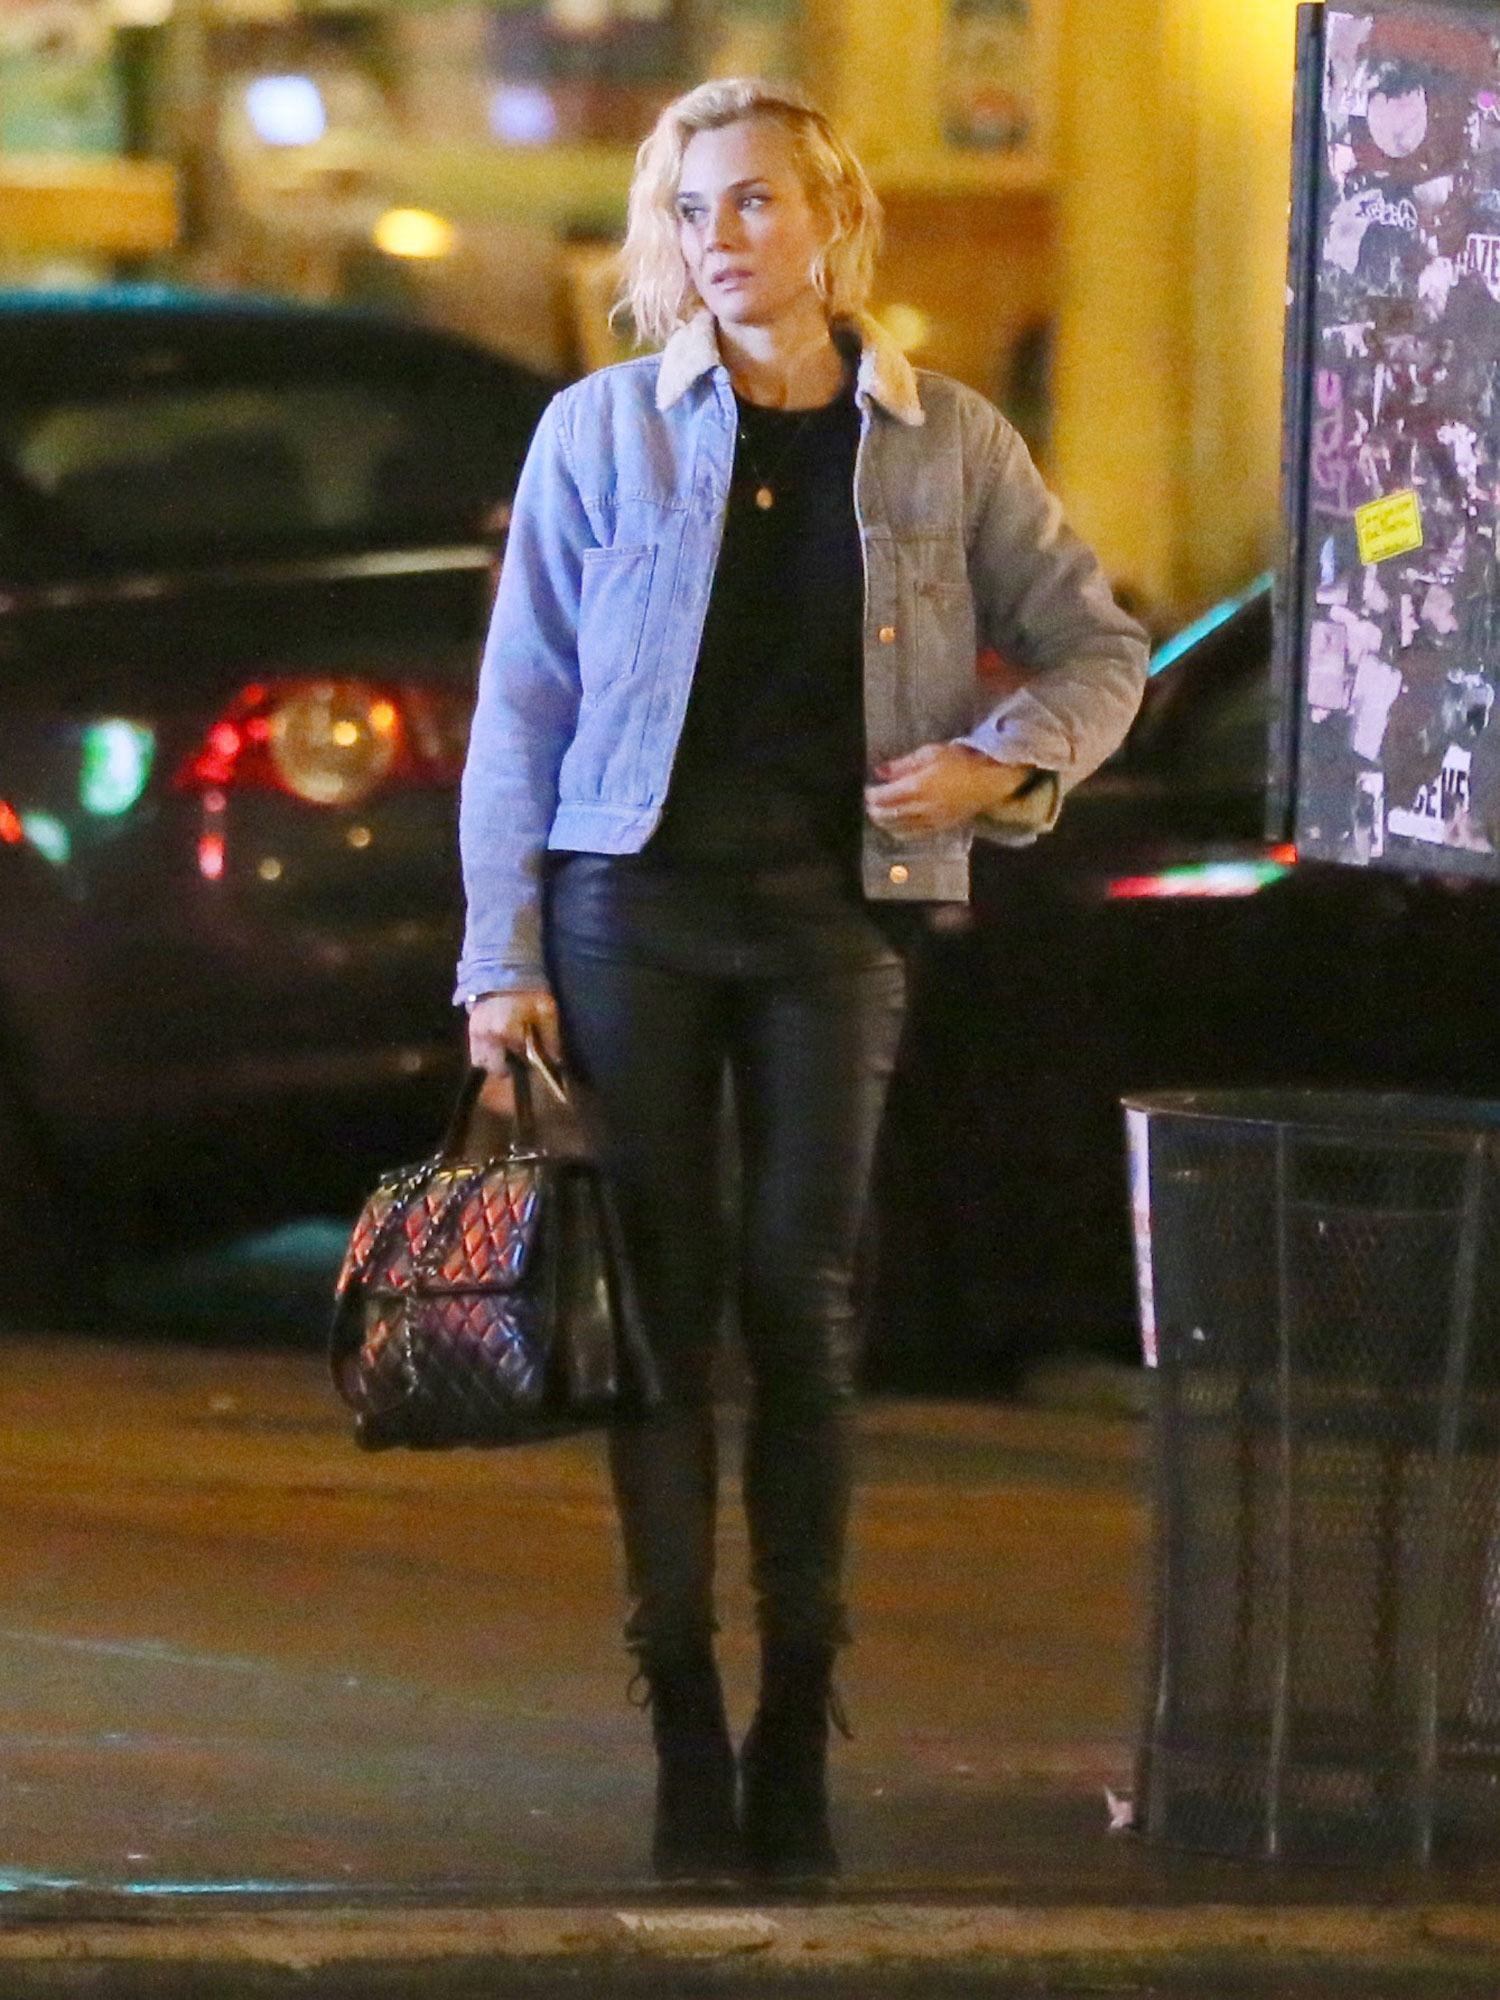 EXCLUSIVE: Diane Kruger is Spotted Walking in the East Village of New York